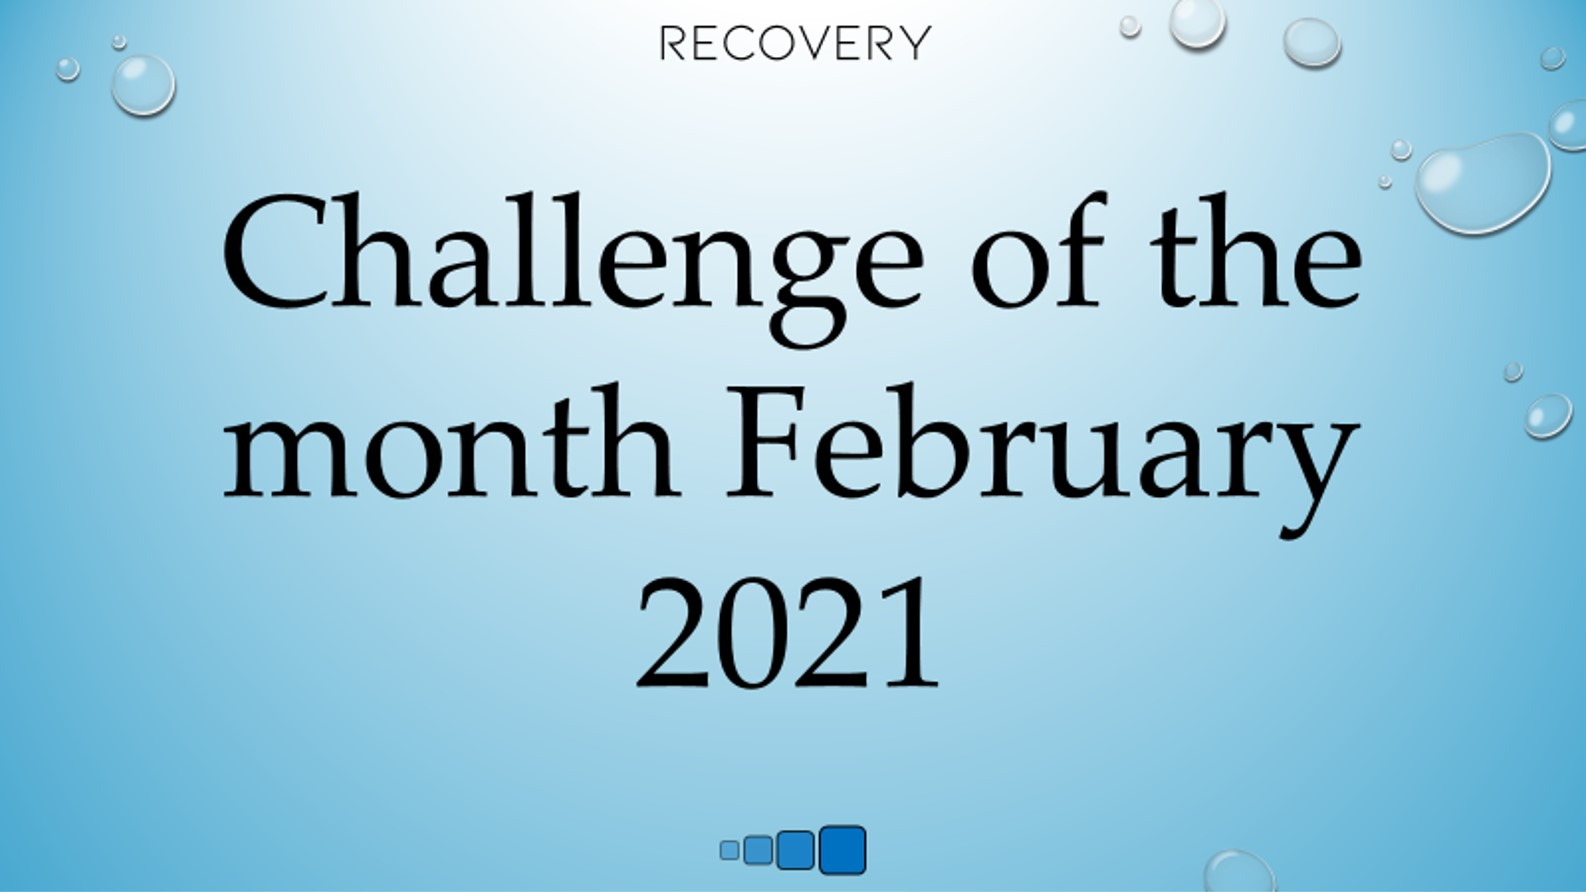 challenge of the month february 2021